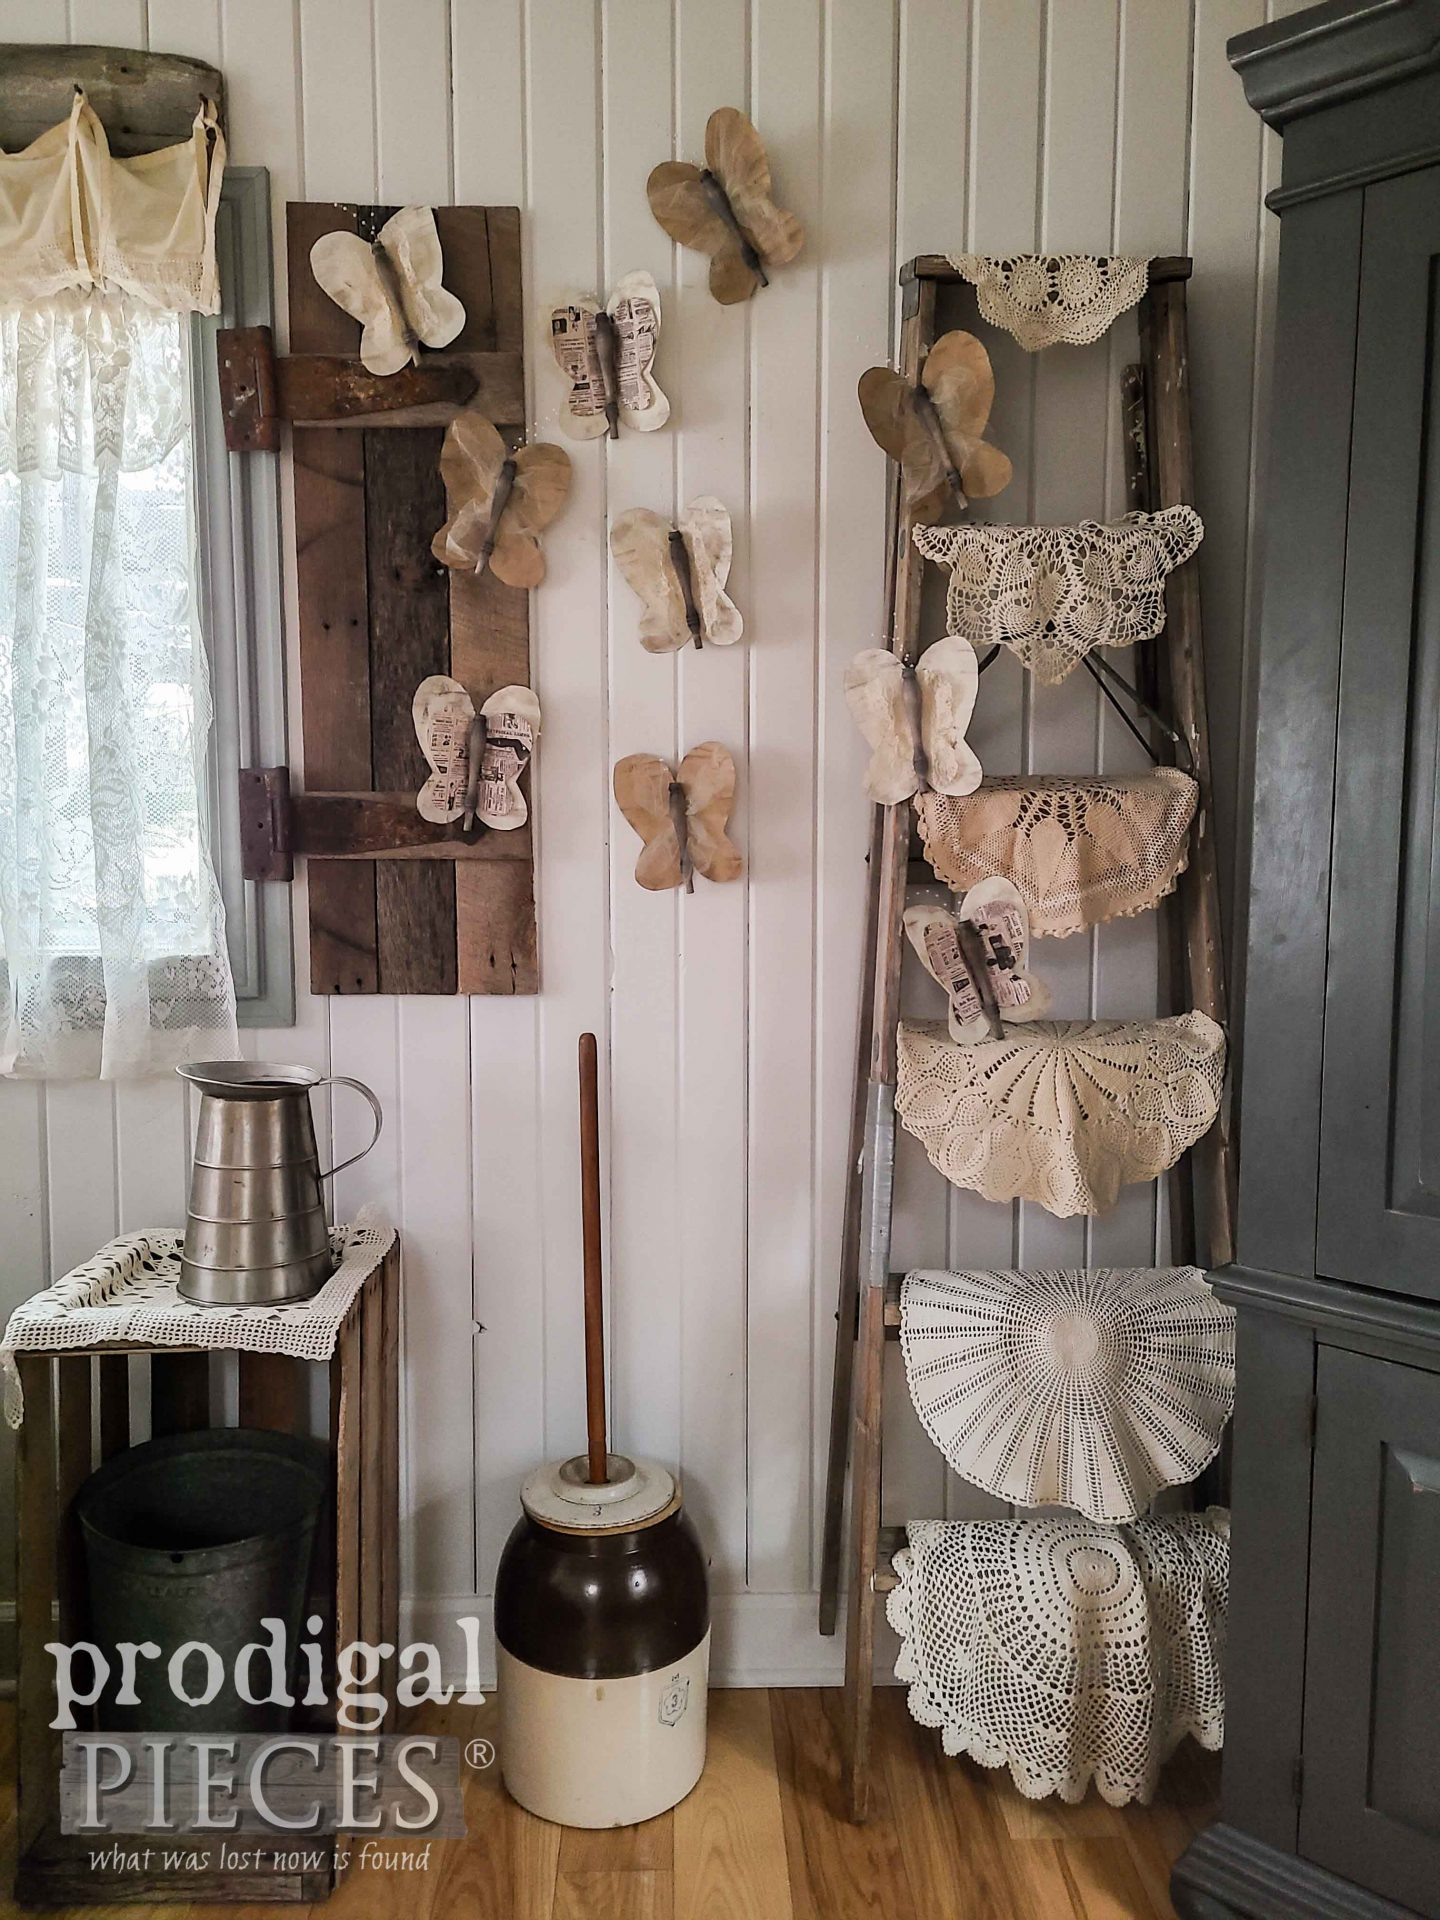 DIY Upcycled Butterflies for Salvaged Style Art by Larissa of Prodigal Pieces | prodigalpieces.com #prodigalpieces #diy #home #art #homedecor